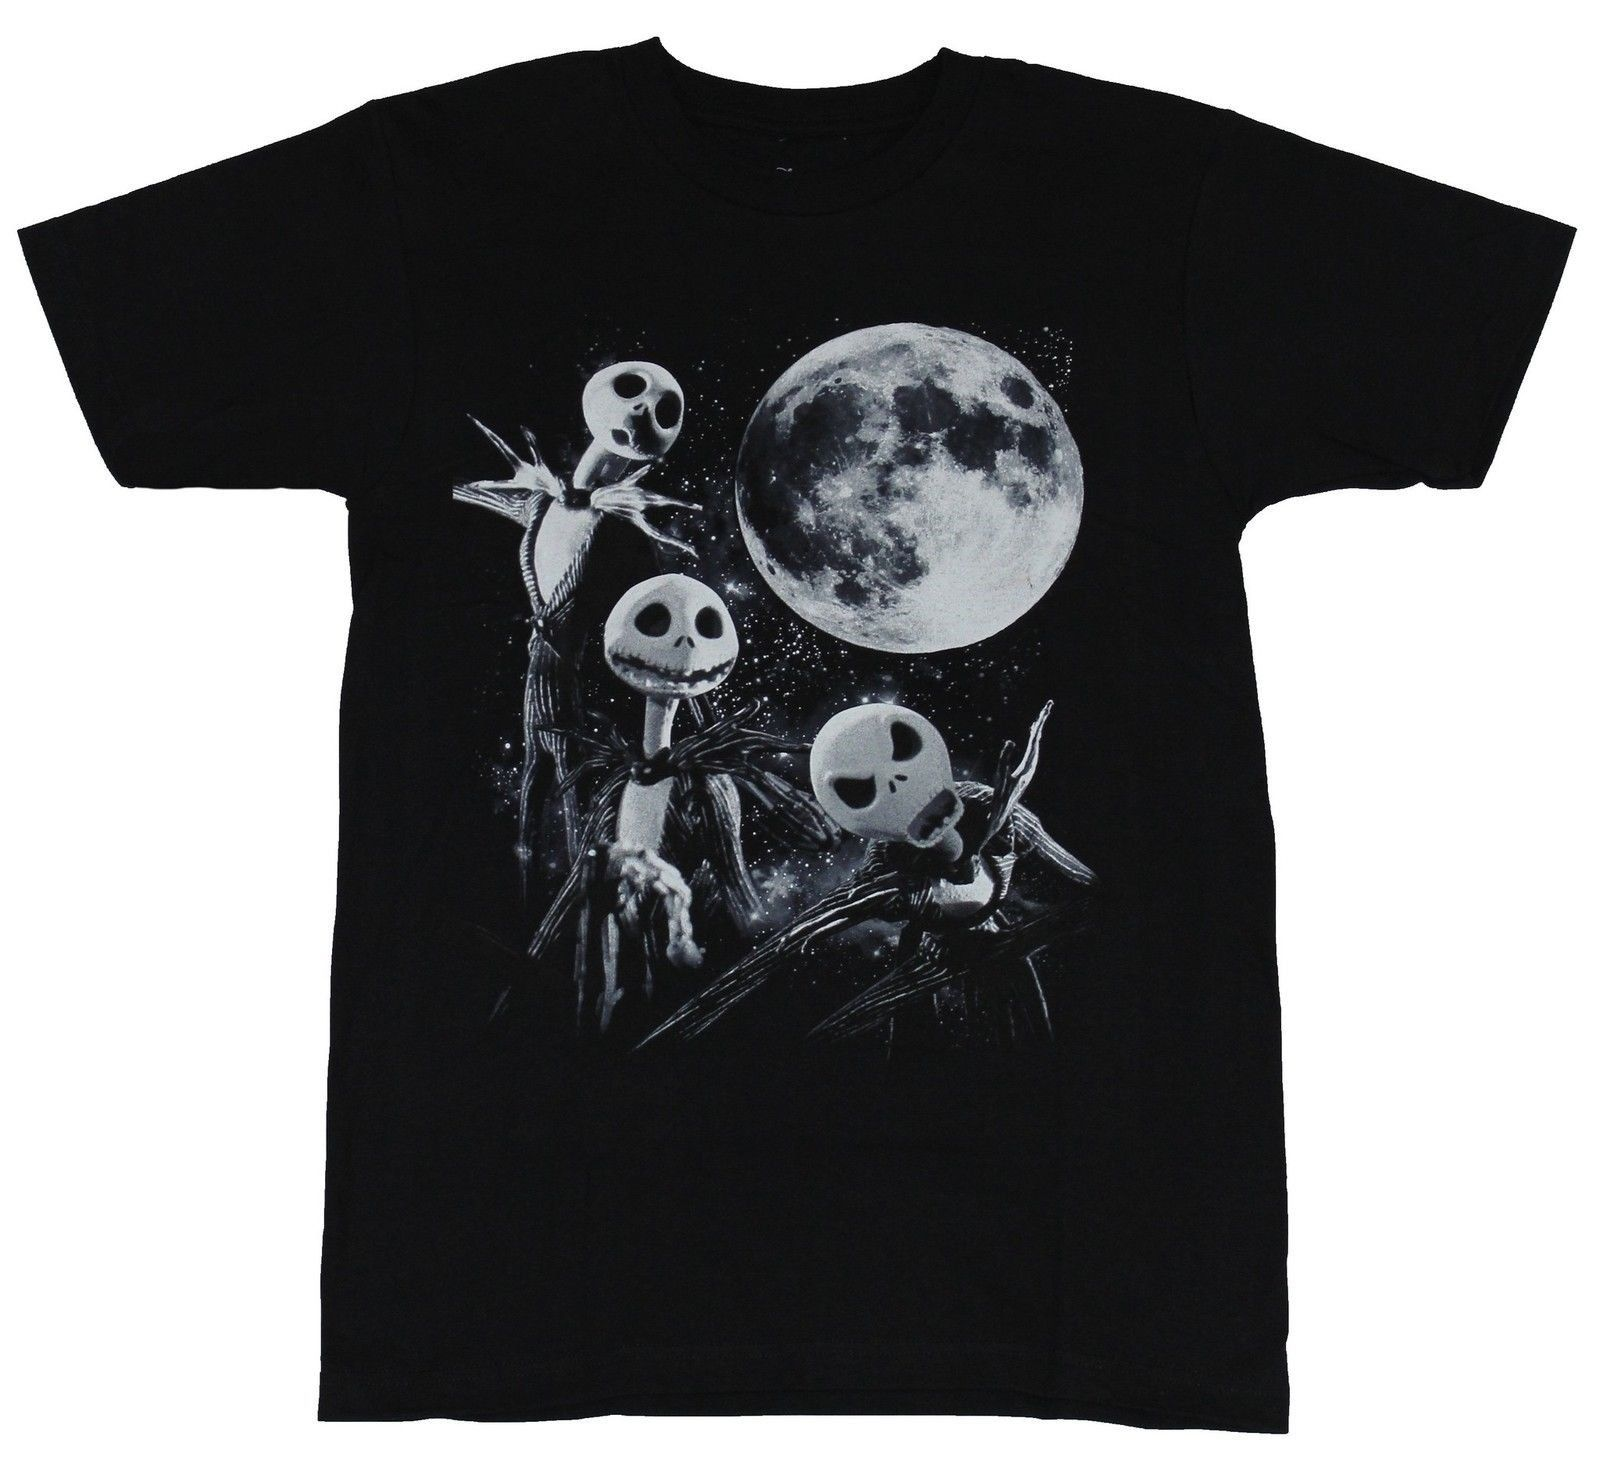 Nightmare Before Christmas Mens T-Shirt - 3 Jack Skellington Moon Image Cheap Price 100 % Cotton T Shirts Top Tee Plus Size